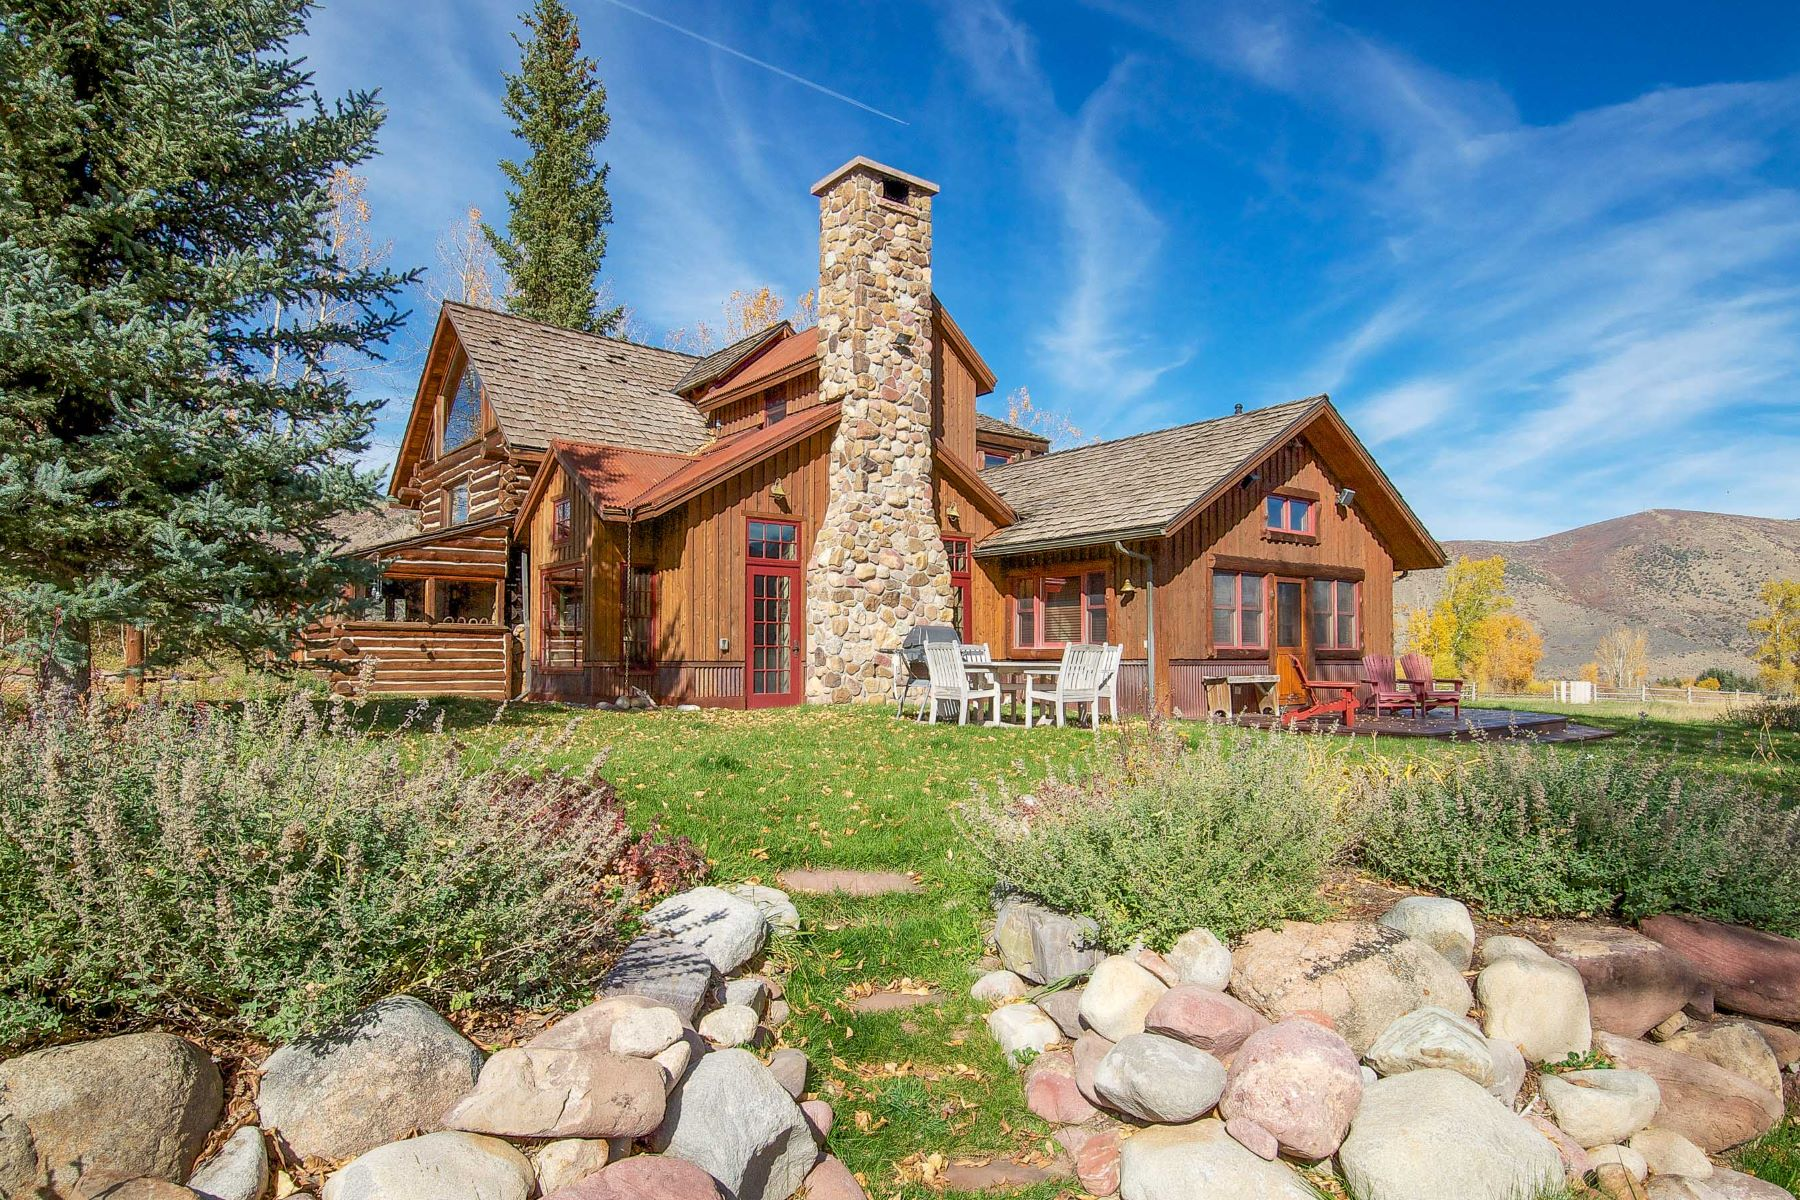 단독 가정 주택 용 매매 에 Rocky Mountain Ranch on the River 1150 Capitol Creek Road Snowmass, 콜로라도, 81654 미국